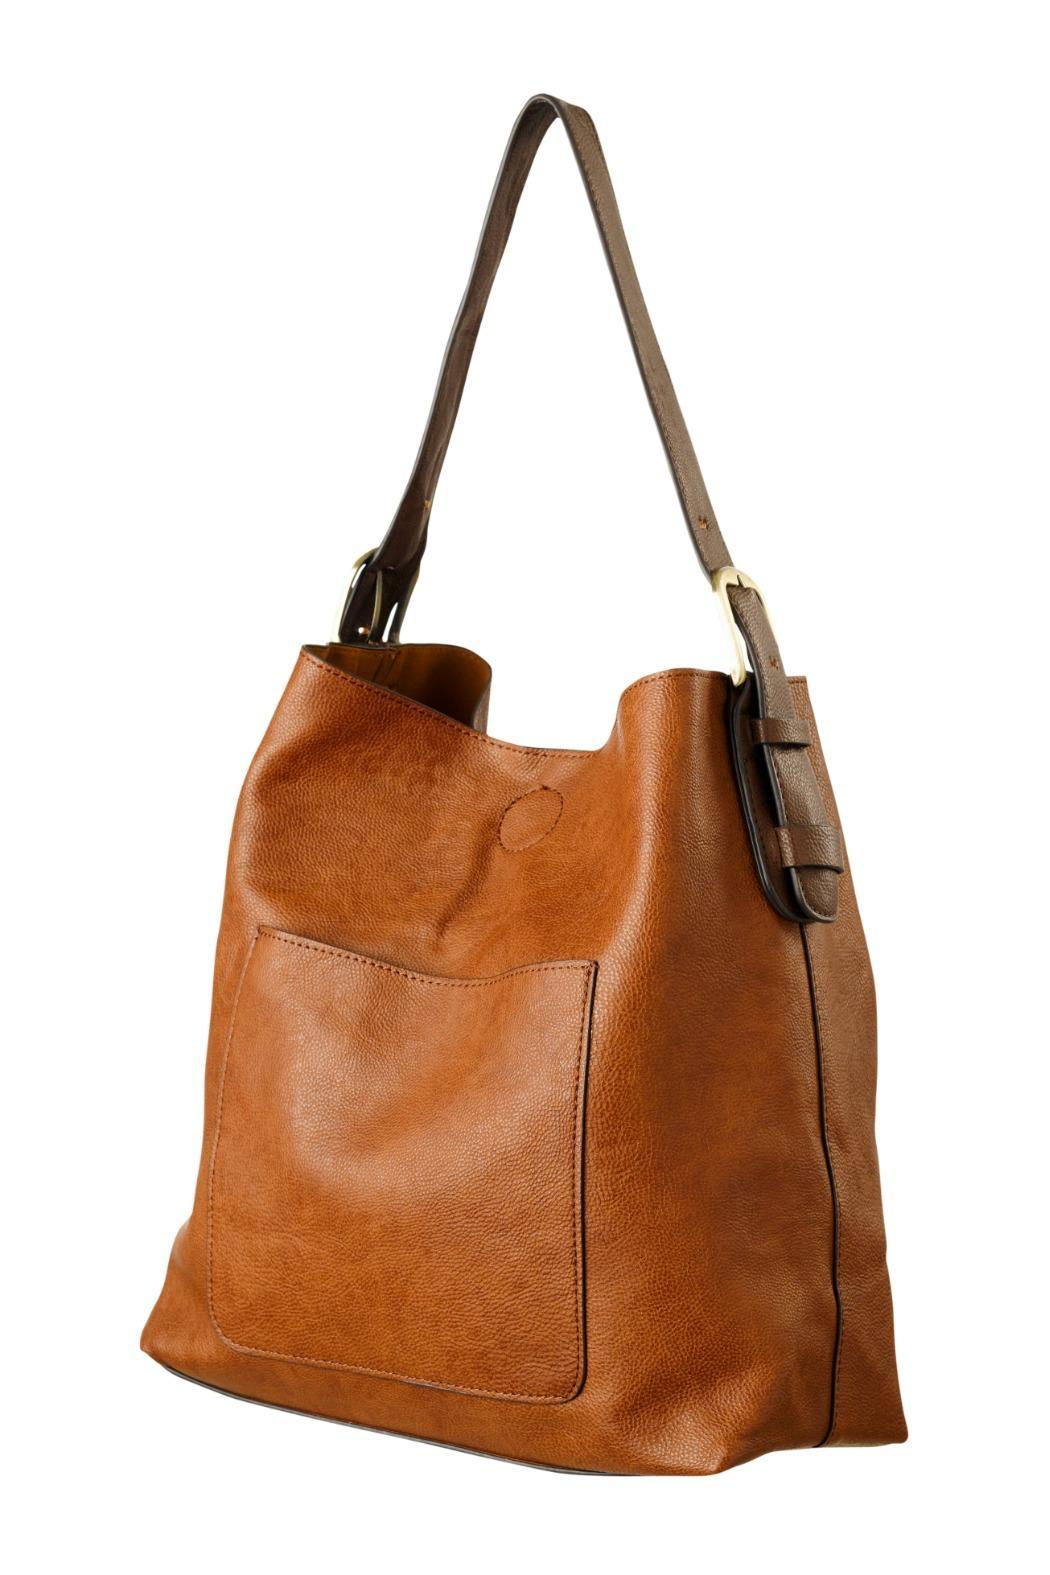 Joy Accessories Cognac Hobo Bag from Wisconsin by Wilkins ...